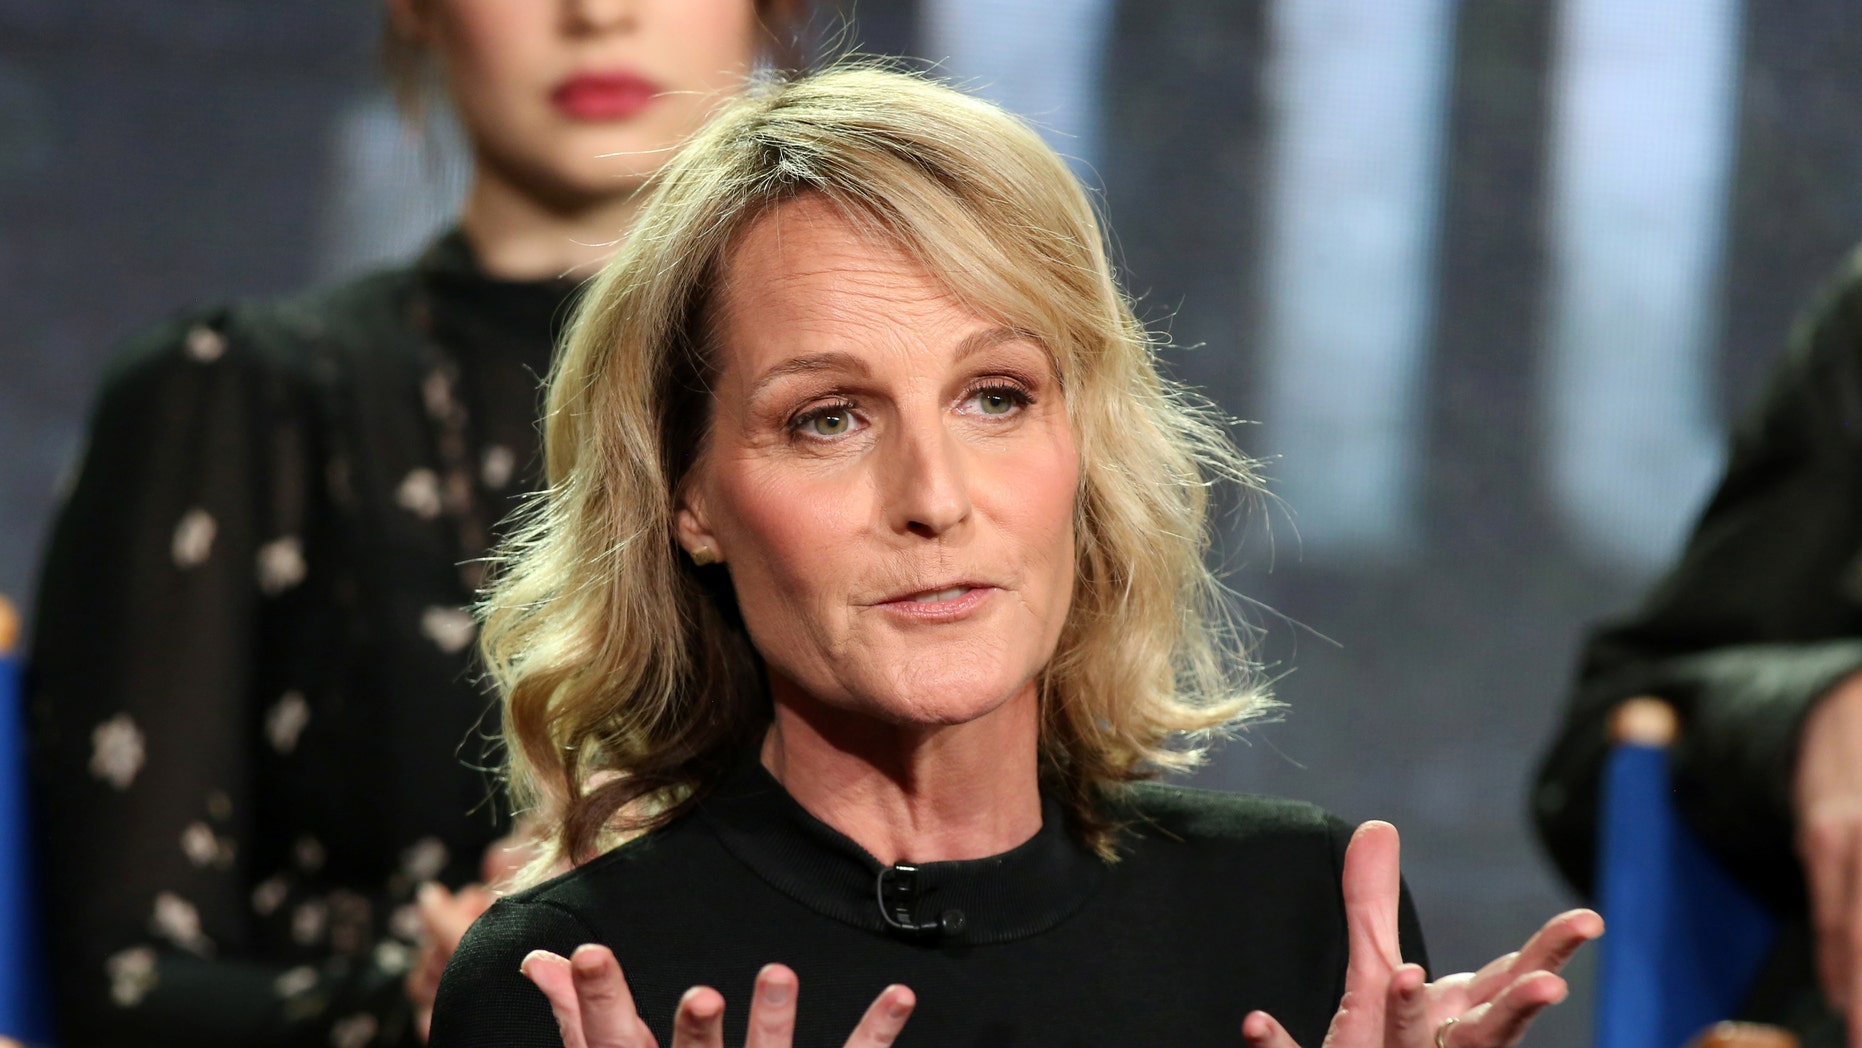 """Actress Helen Hunt speaks about the Fox television show """"Shots Fired"""" during the TCA presentations in Pasadena, California, U.S., January 11, 2017. REUTERS/Lucy Nicholson - RTX2YKCQ"""